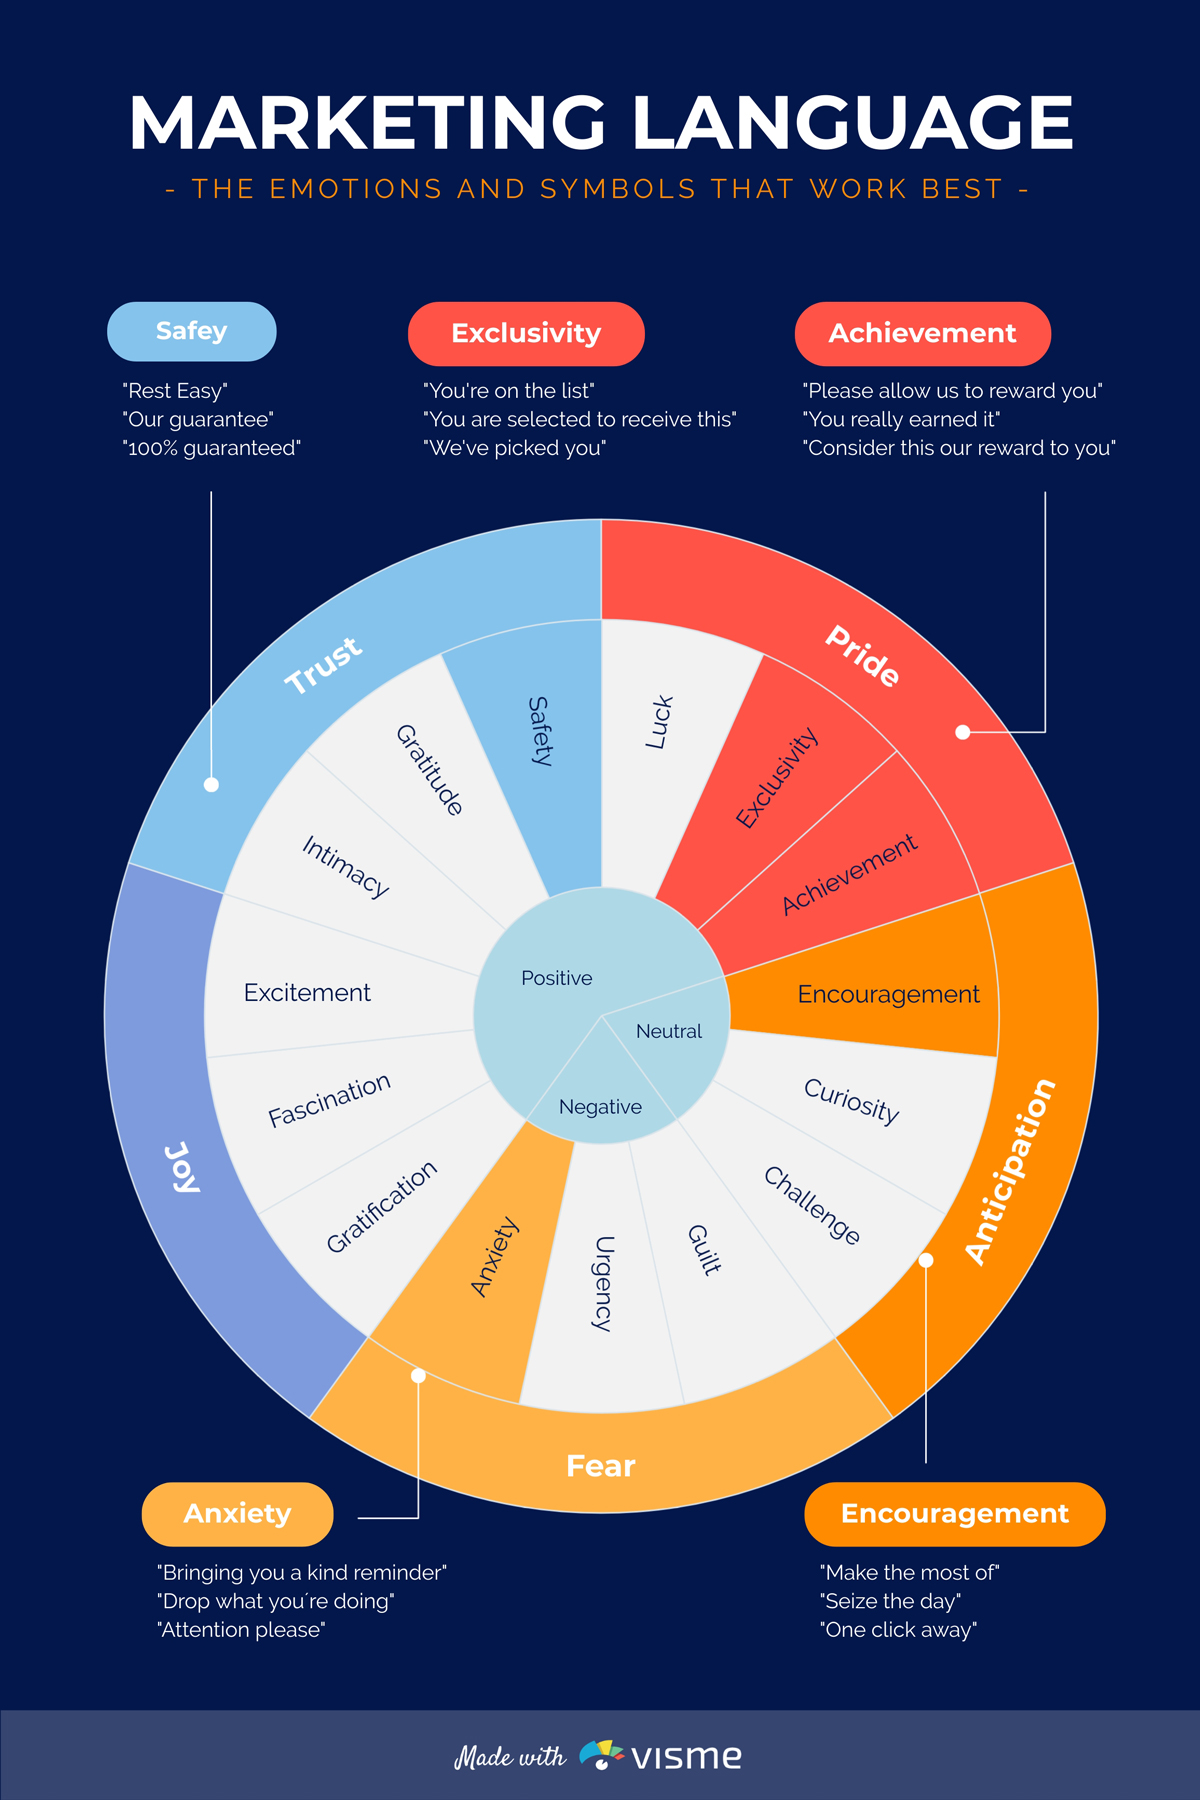 A diagram showcasing marketing language and the emotions it evokes.